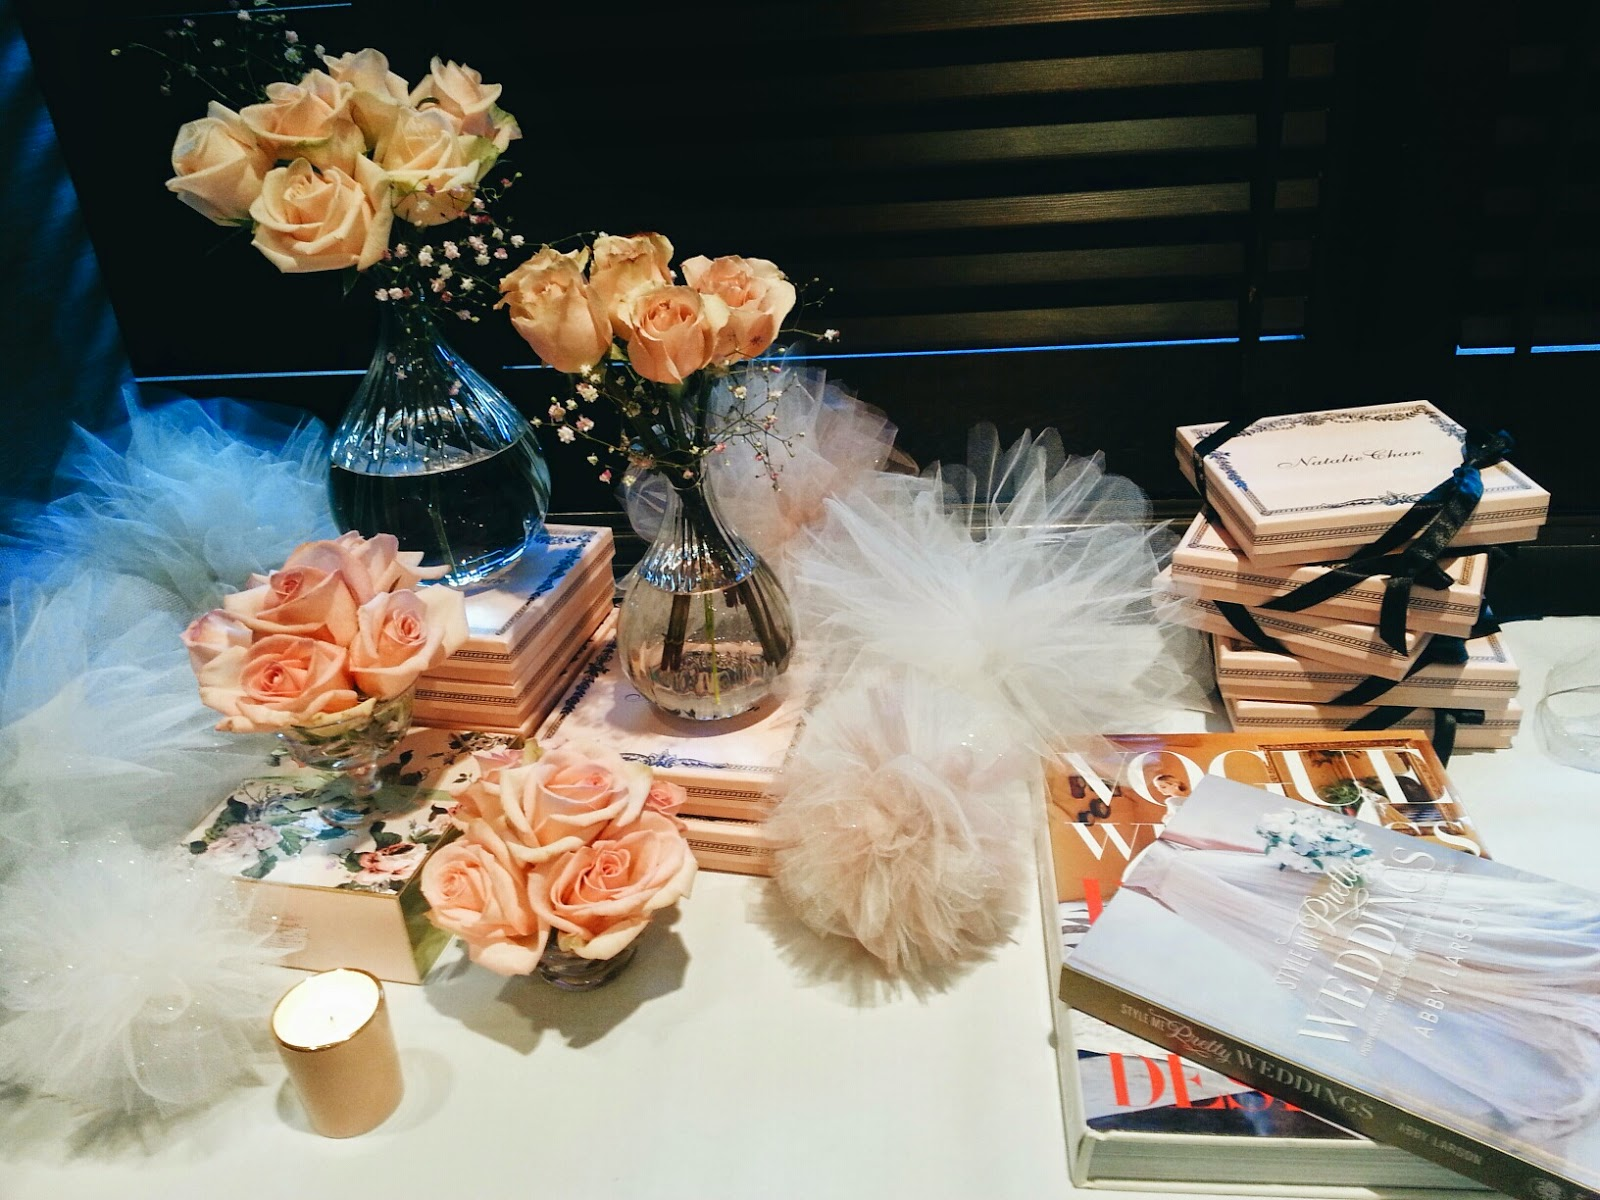 Portrait of a lady behind the scenes natalie chan boutique a display table lined the side of the room displayed with a plethora of our favourite things roses beautiful books tulle pom poms and a stack of our new izmirmasajfo Gallery